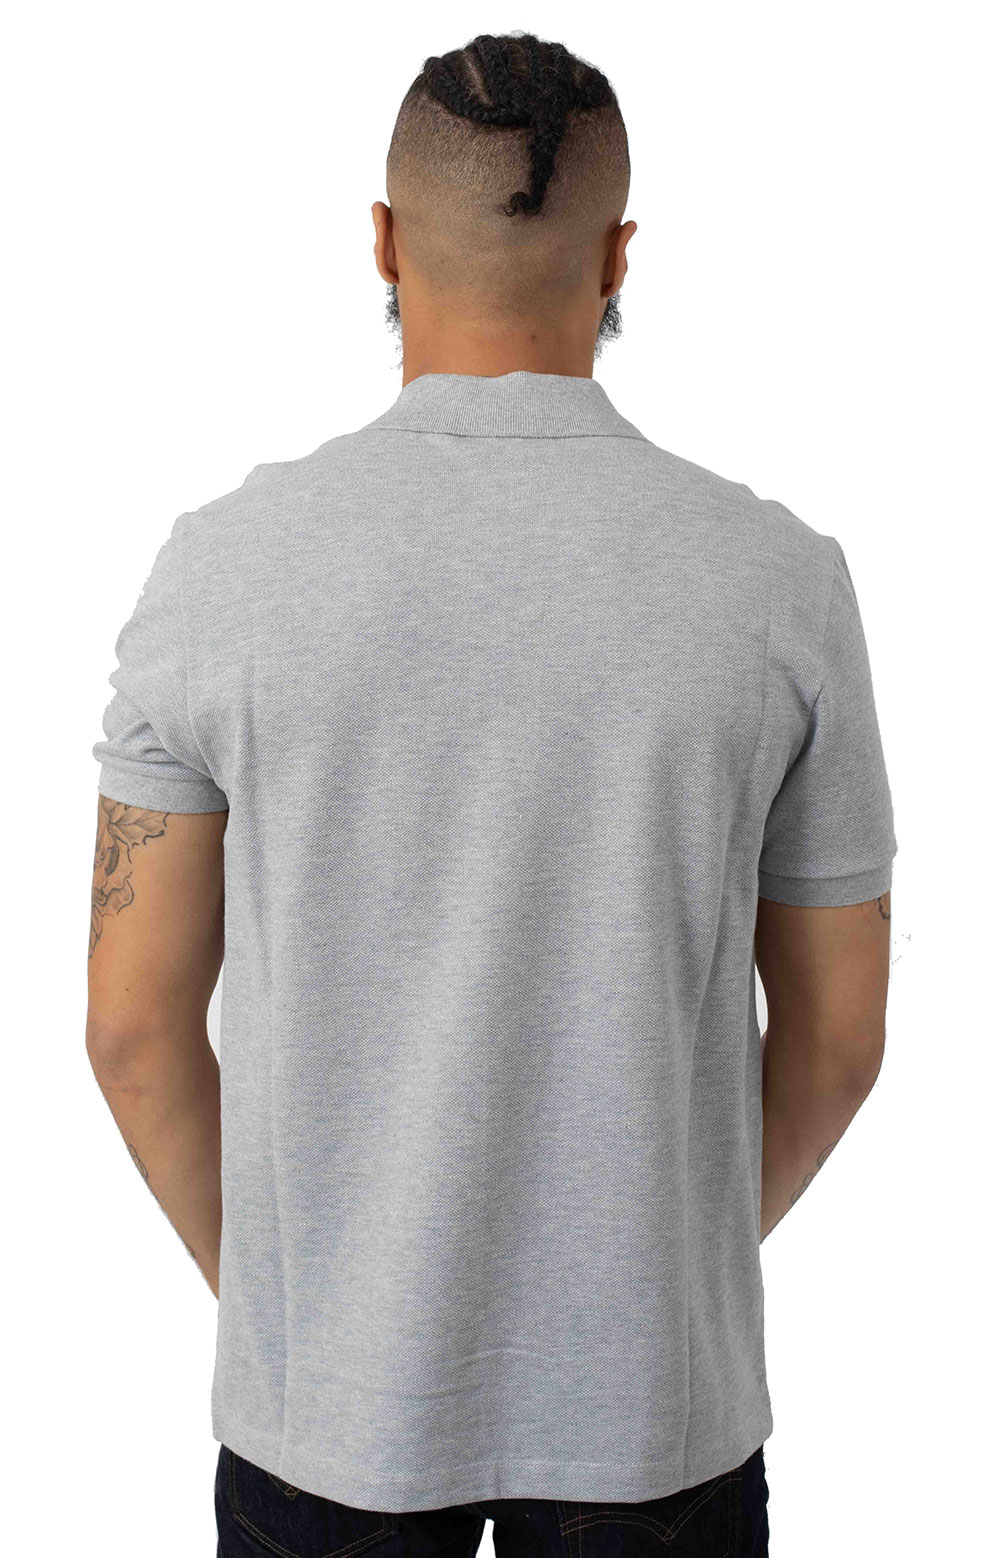 Regular Fit Croc Magic Cotton Pique Polo - Grey Chine 3